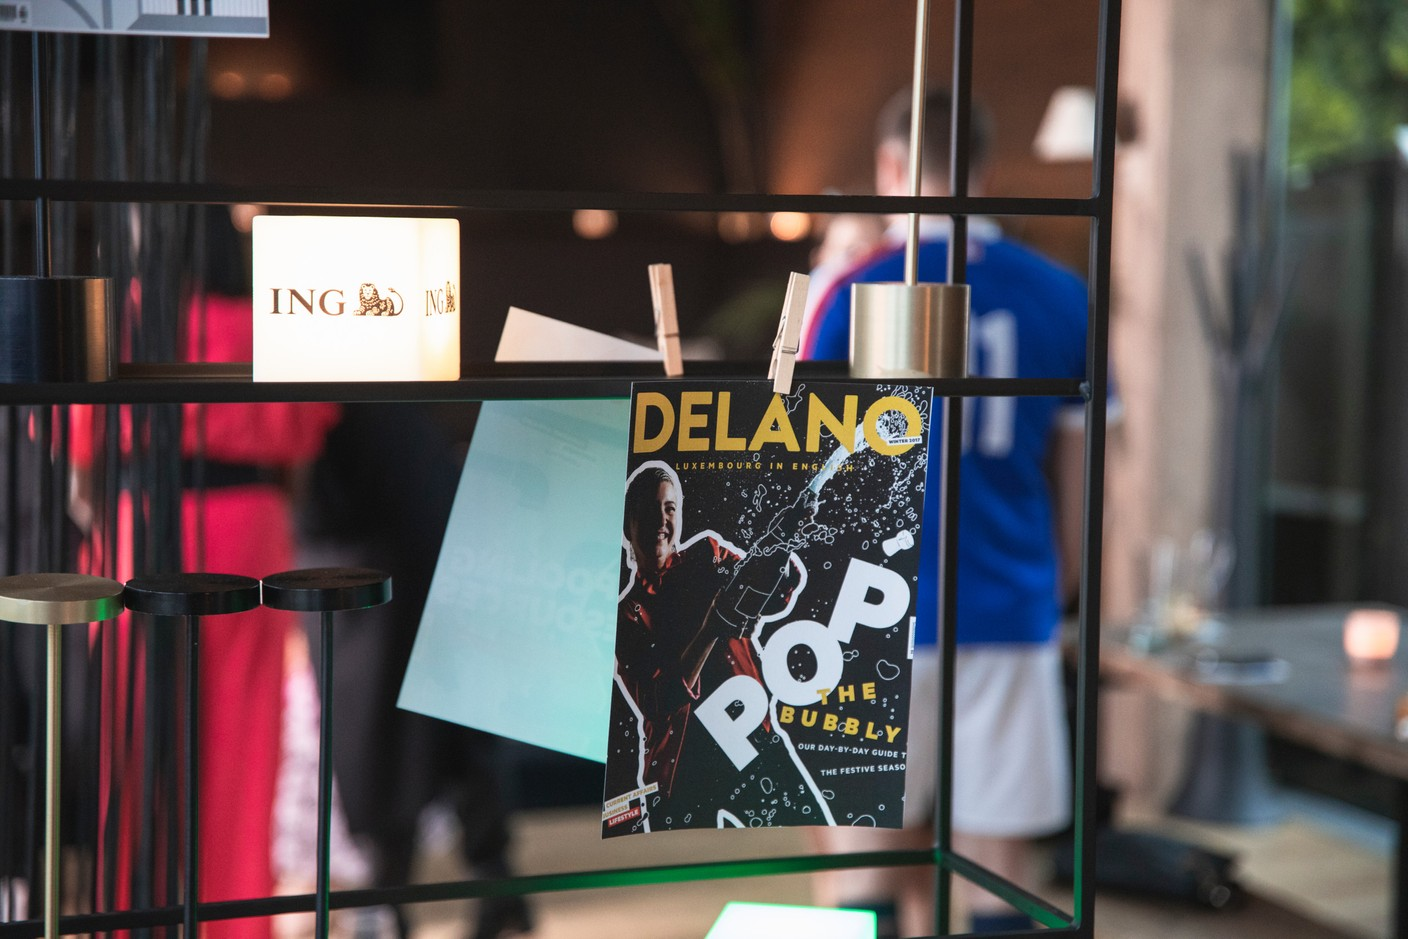 Covers from the previous 10 years of Delano magazine. Simon Verjus/Maison Moderne